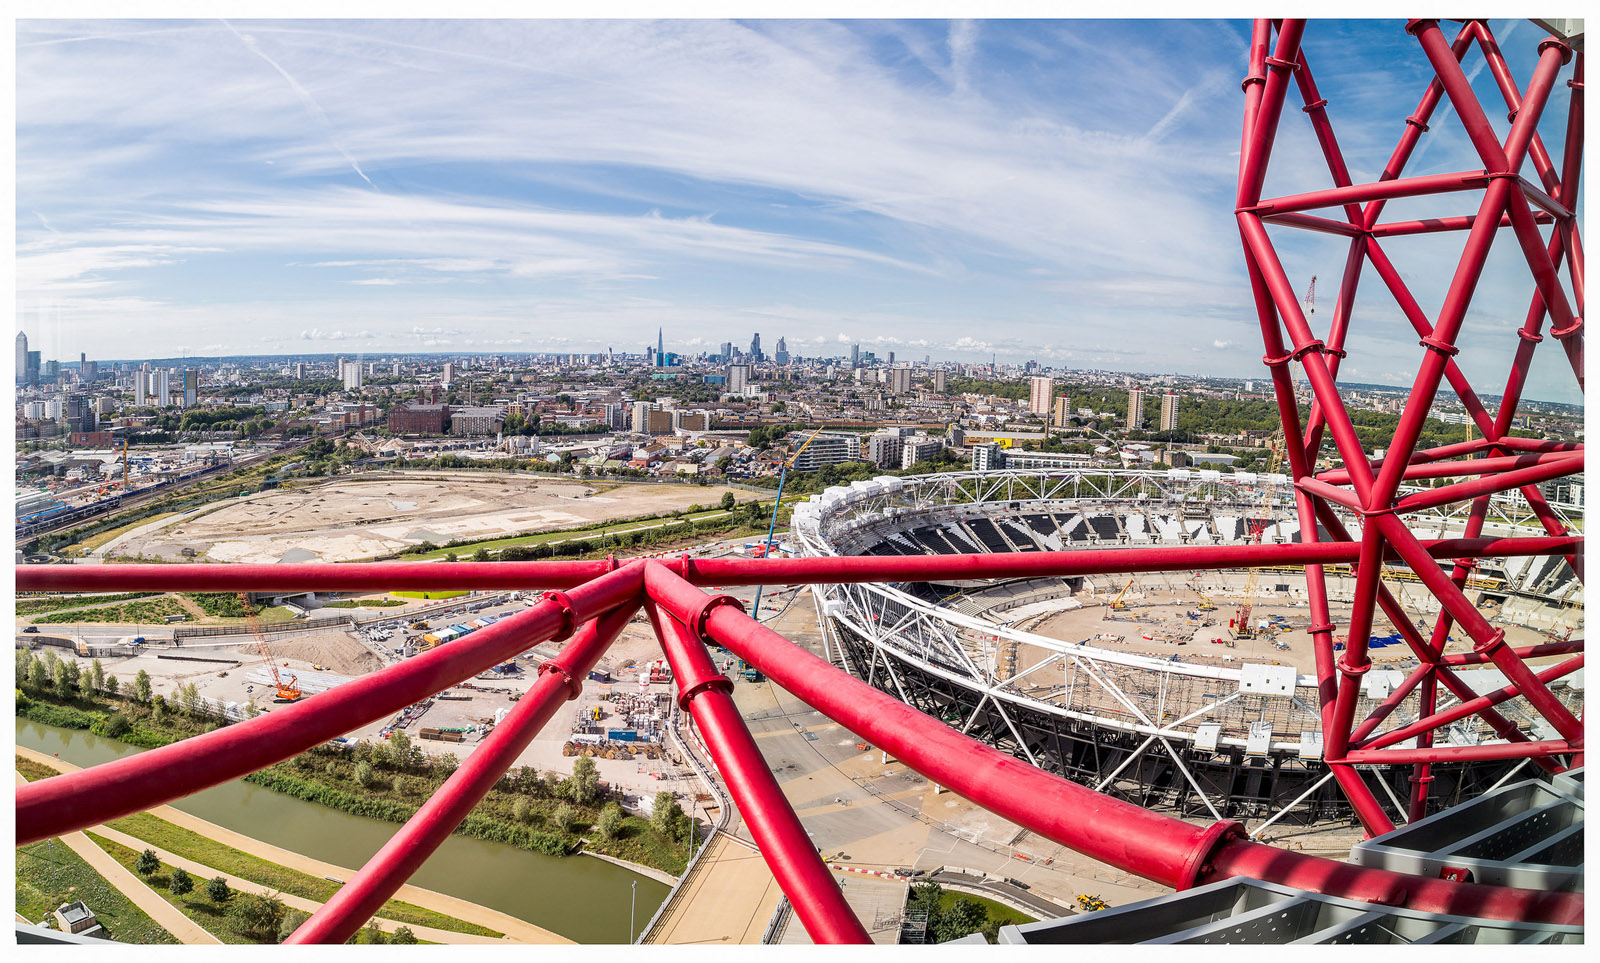 The view from the «ArcelorMittal Orbit». London. England